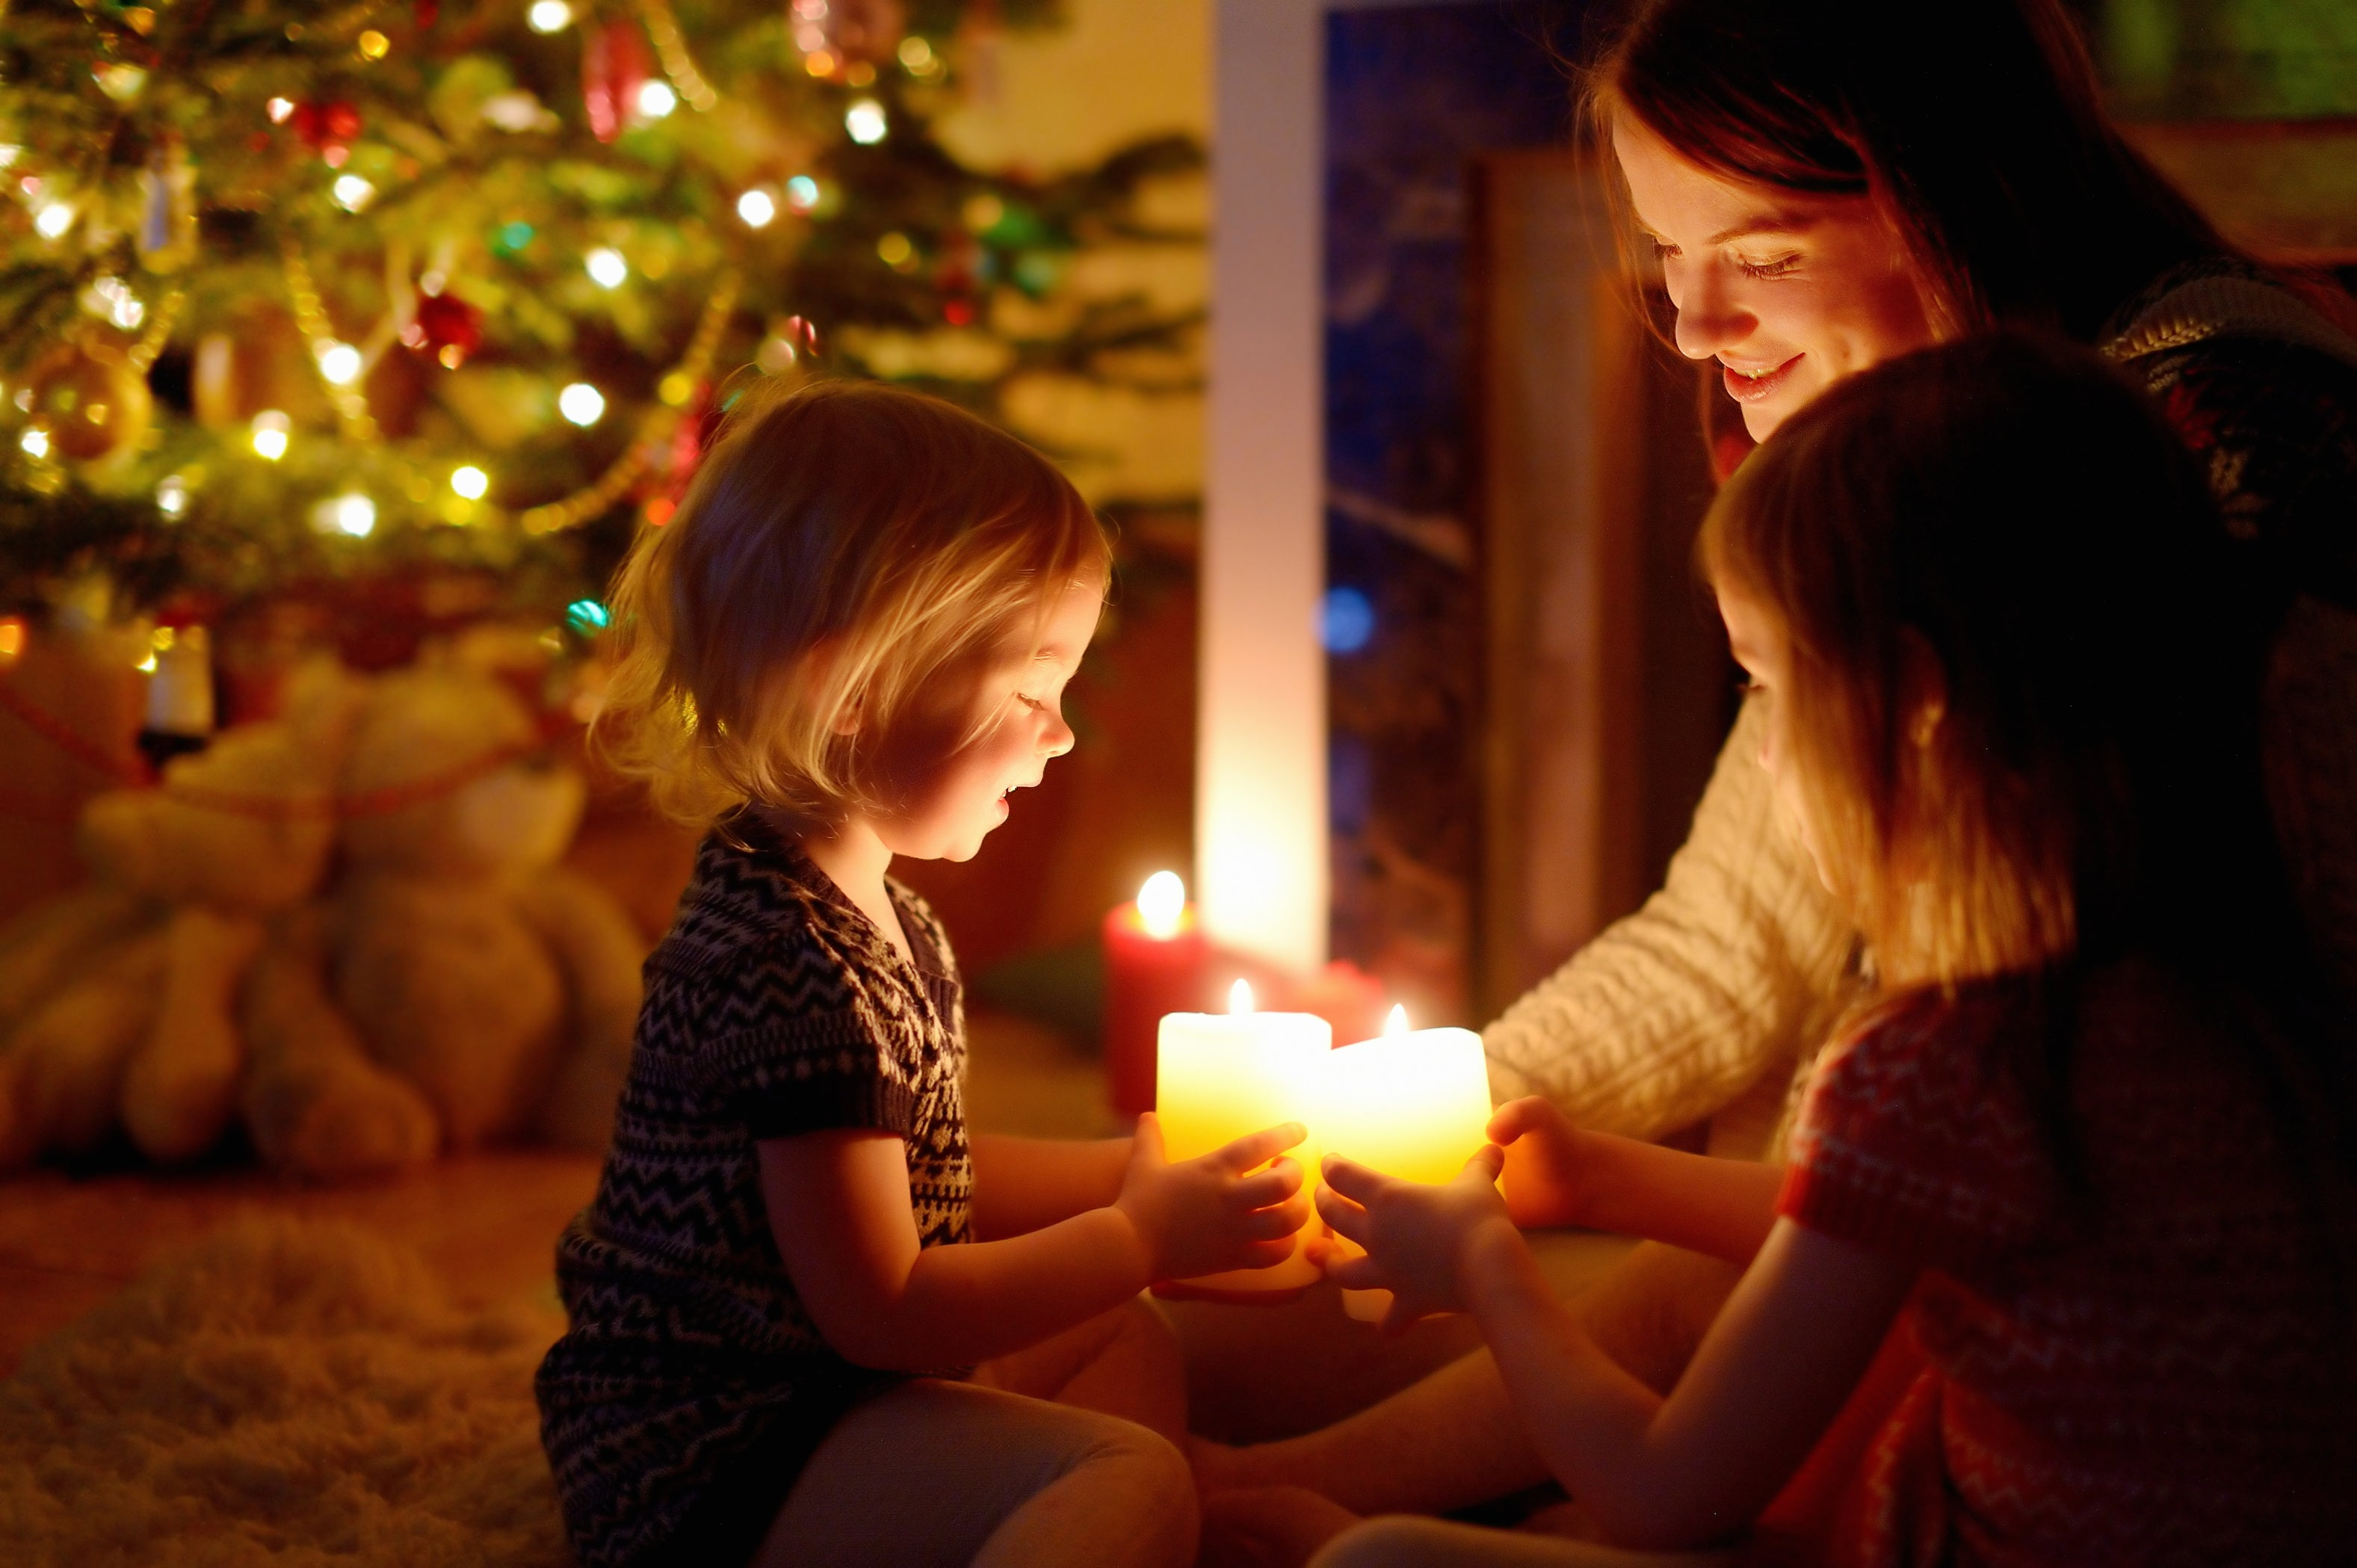 Woman and children holding lit candles in front of the Christmas tree at night - holiday photography example